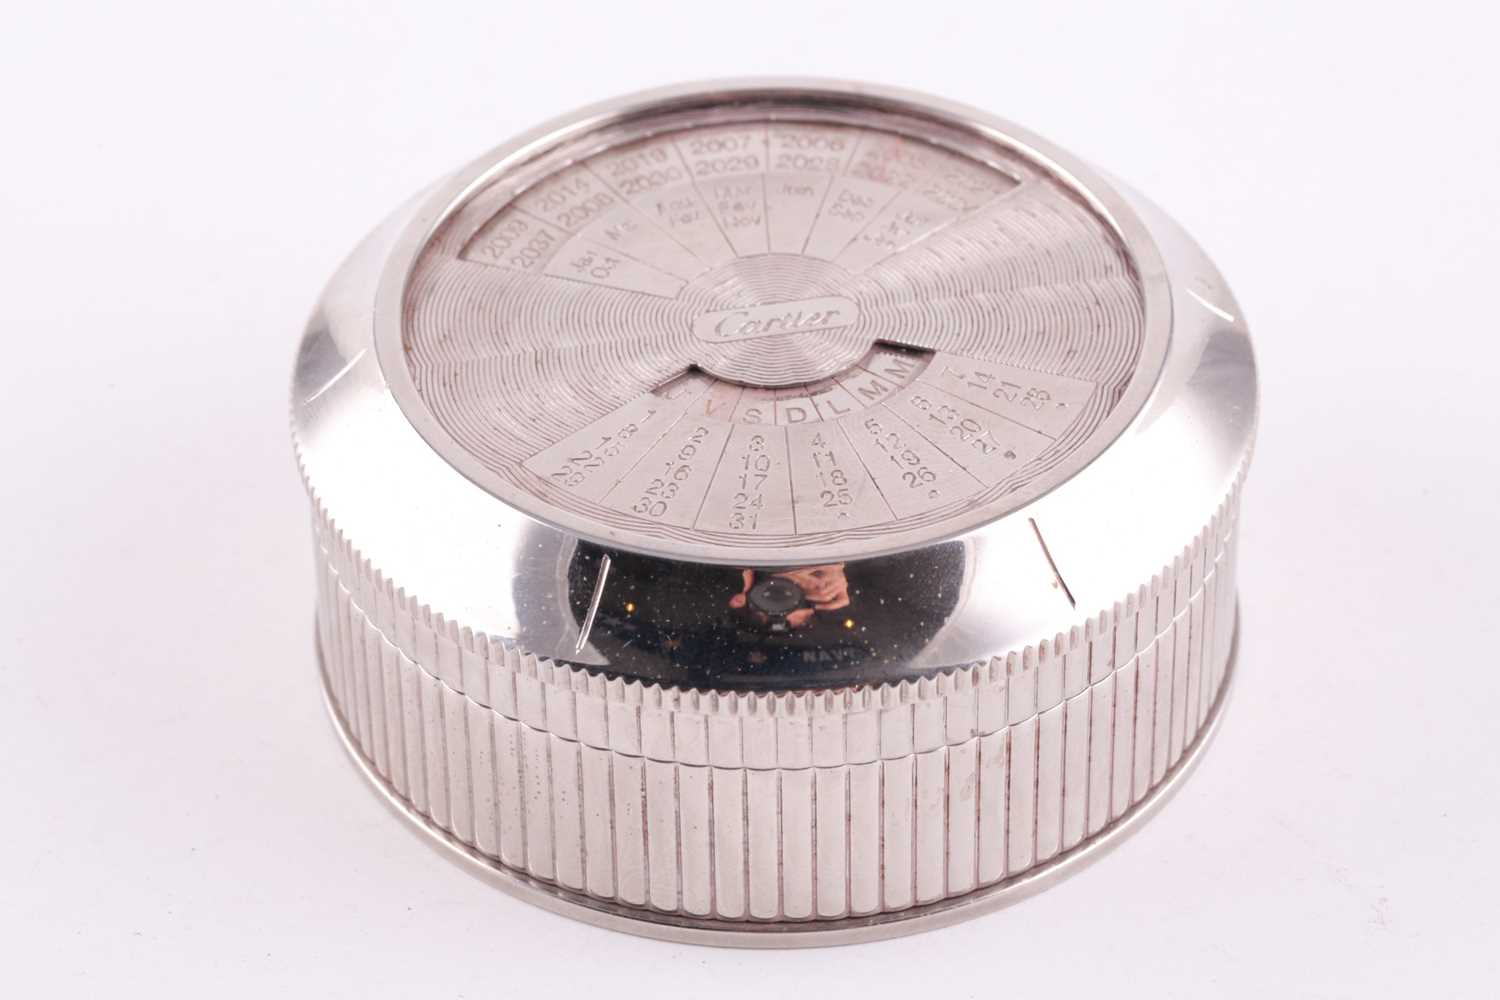 A Cartier chrome desk calender, with adjustable year, month, and date dial to lid, 8 cm diameter,